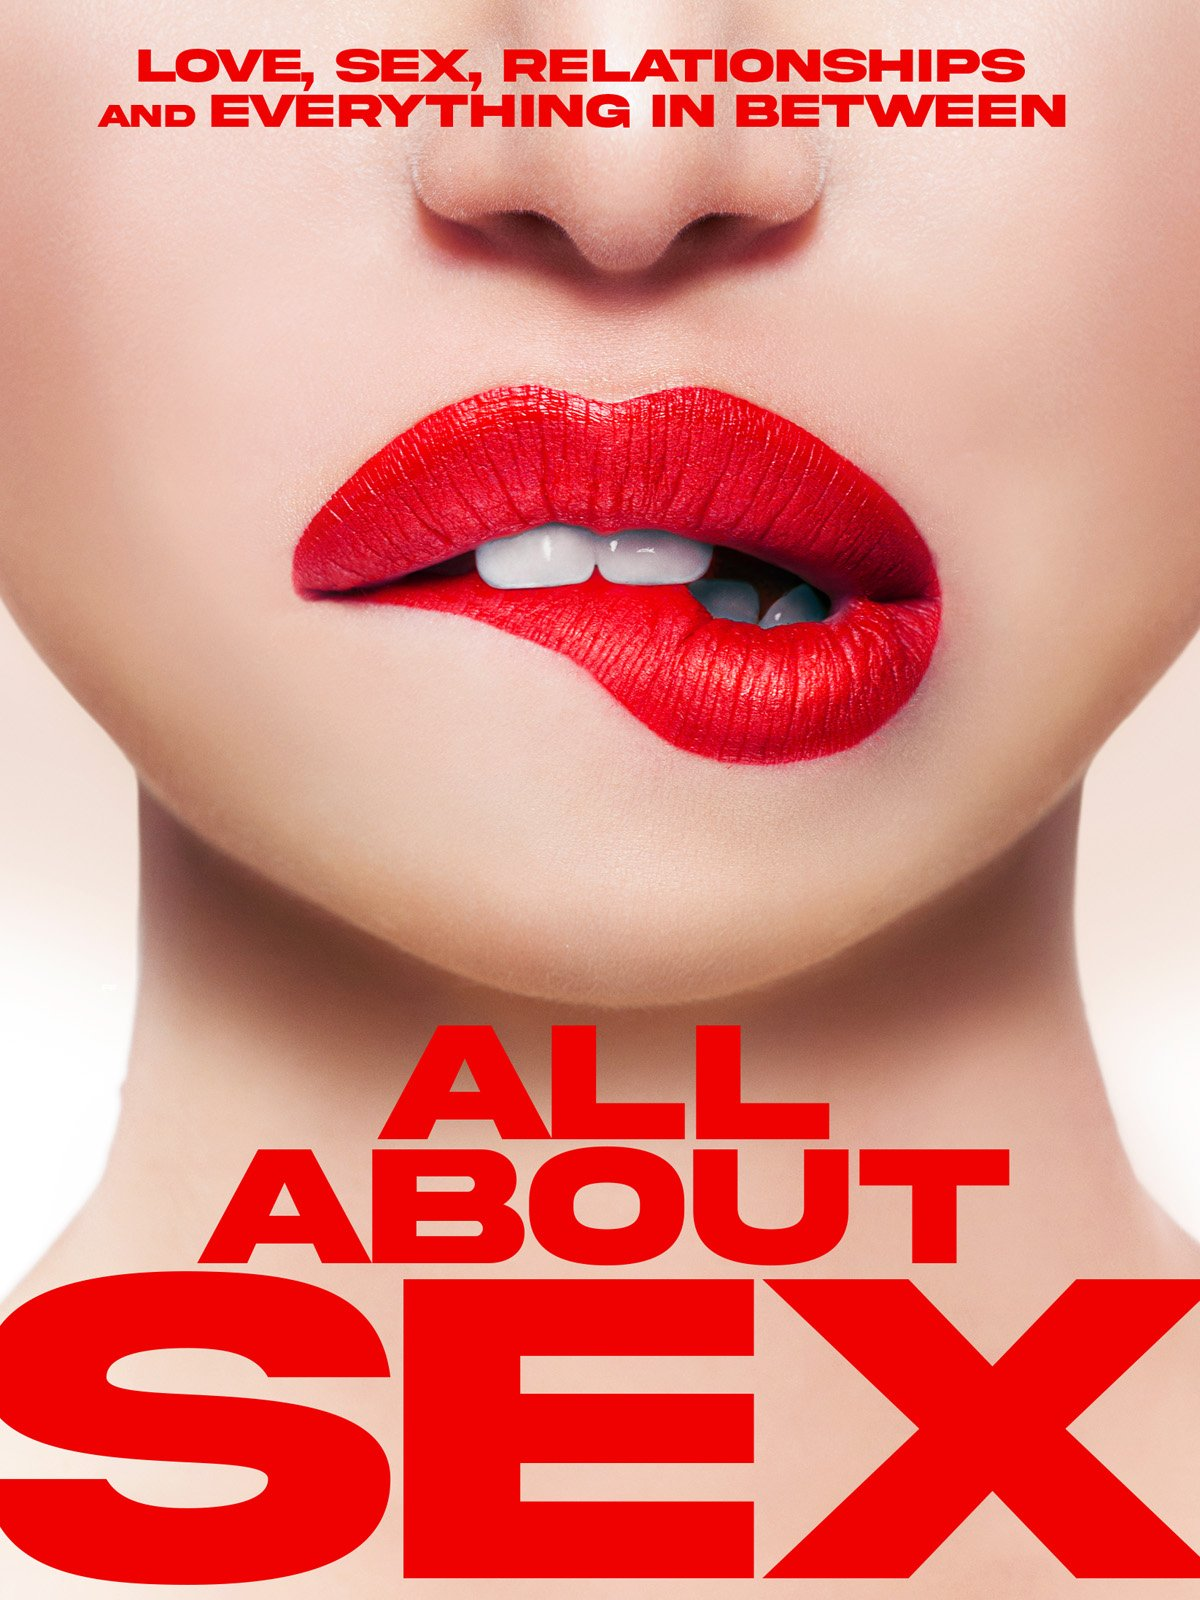 All About Sex (Signature Entertainment) Artwork